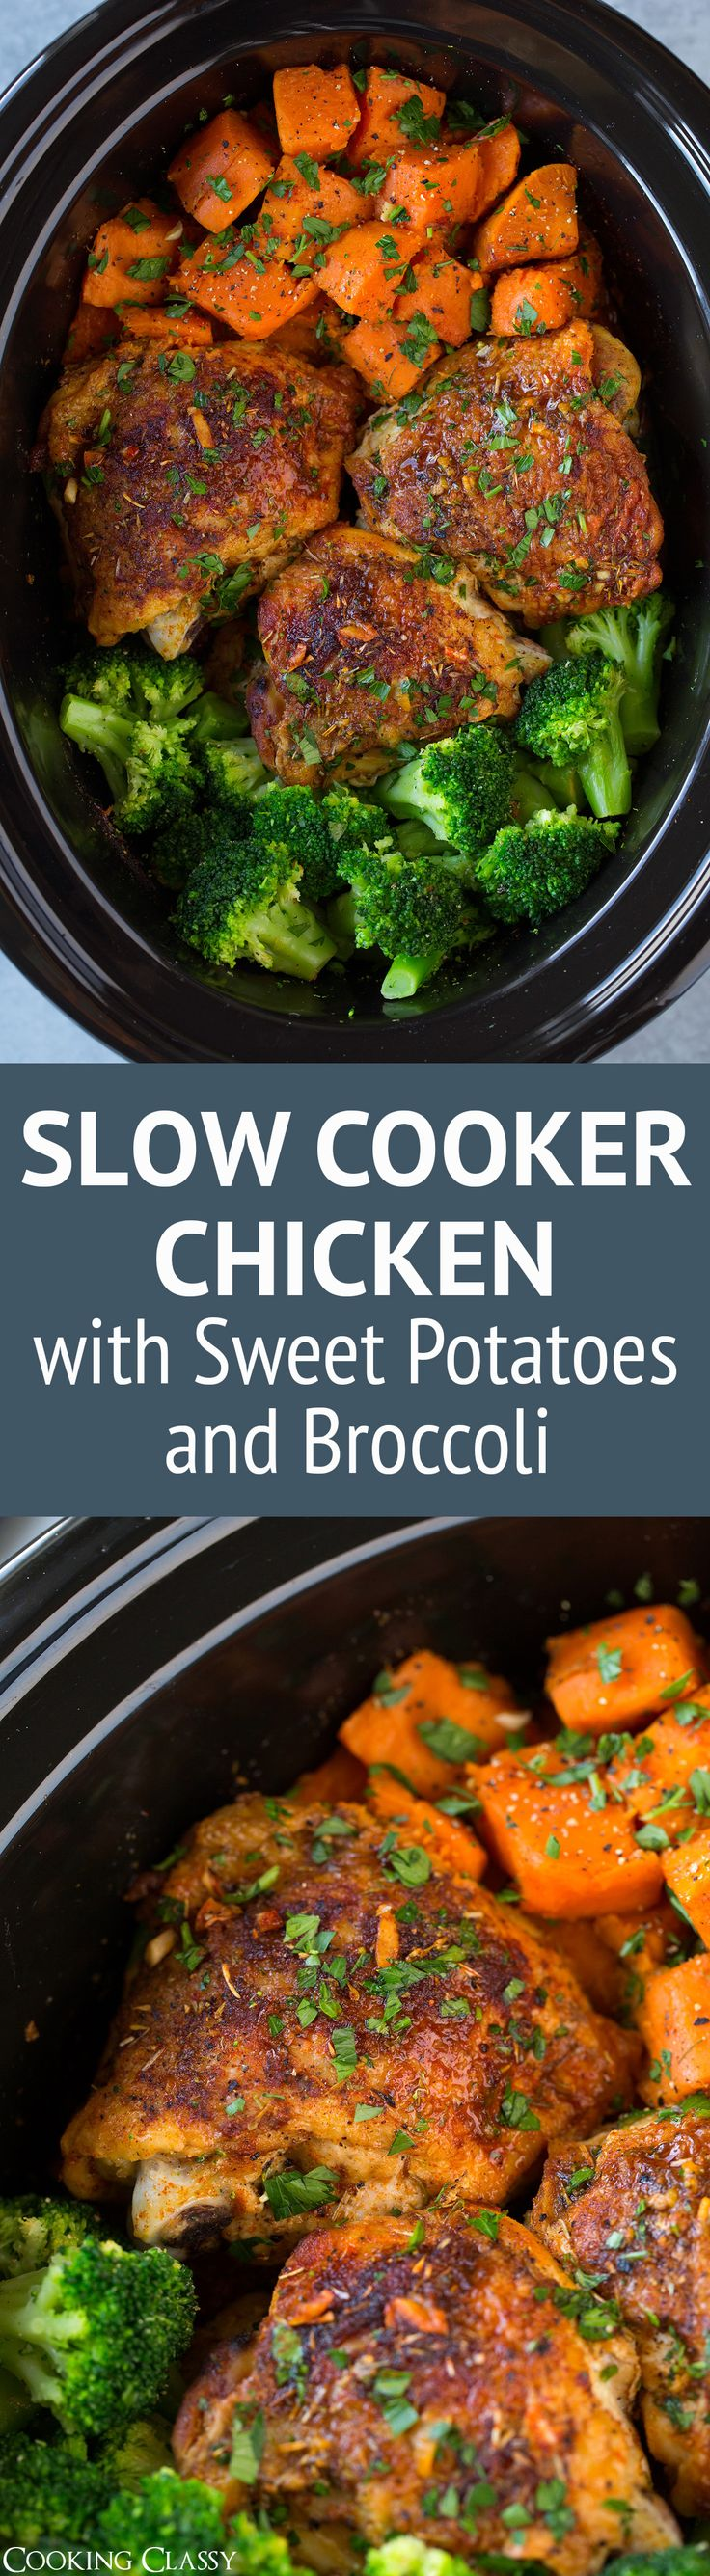 This Slow Cooker Chicken with Sweet Potatoes and Broccoliis perfectly easy to make yet it's so deliciously satisfying! A great meal any day of the week! T